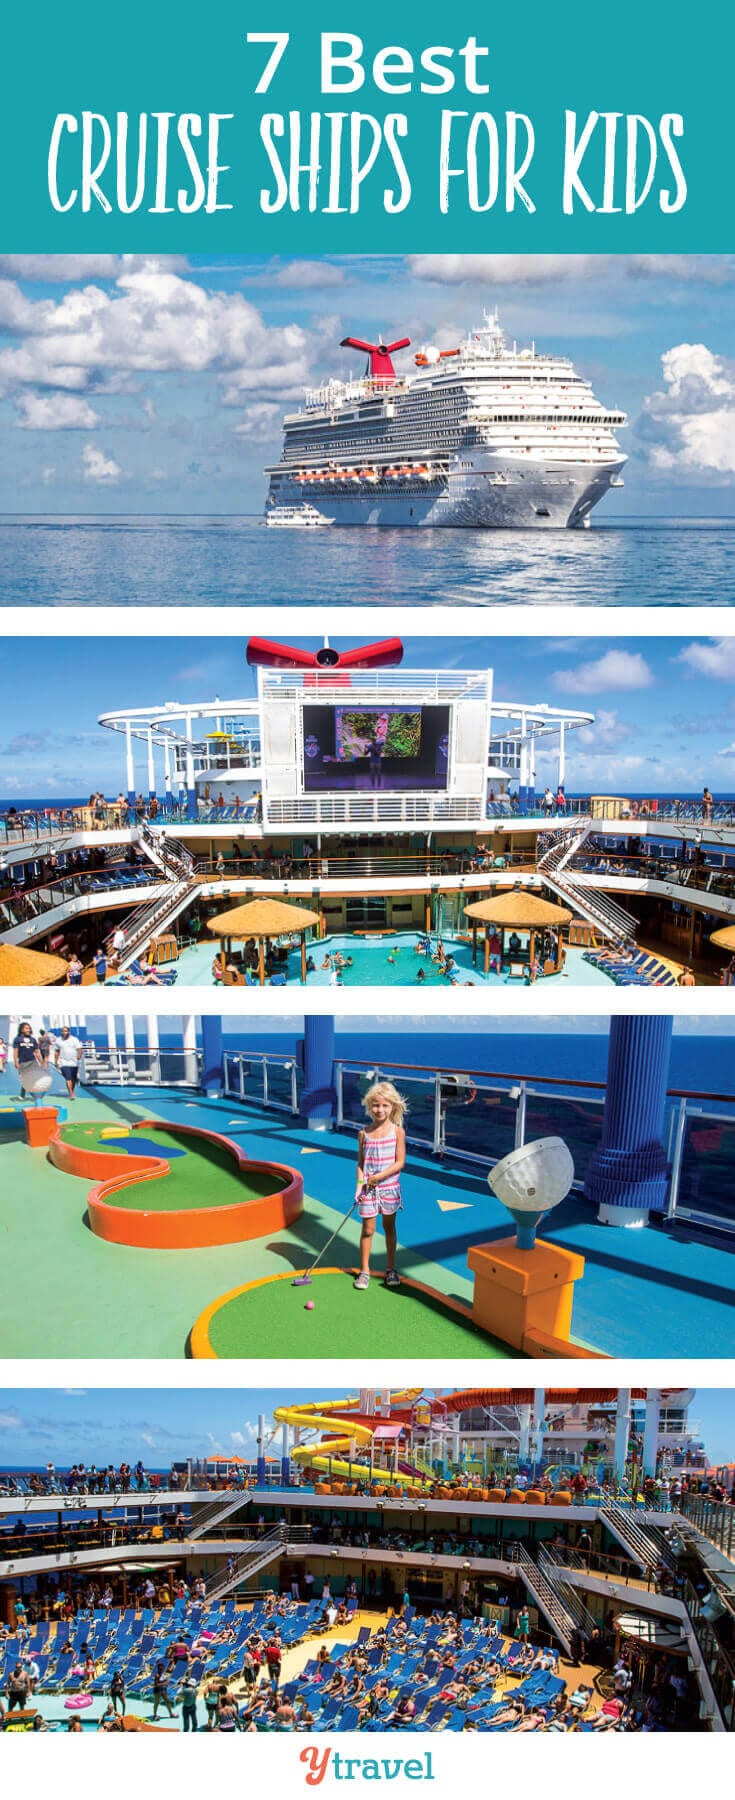 Wondering what the best cruise ships for kids are? 16 year old Lewis has been taking family cruises for years and shares his inside knowledge on the 7 best cruise lines for your next family cruise. #FamilyTravel #cruise #cruises #familycruise